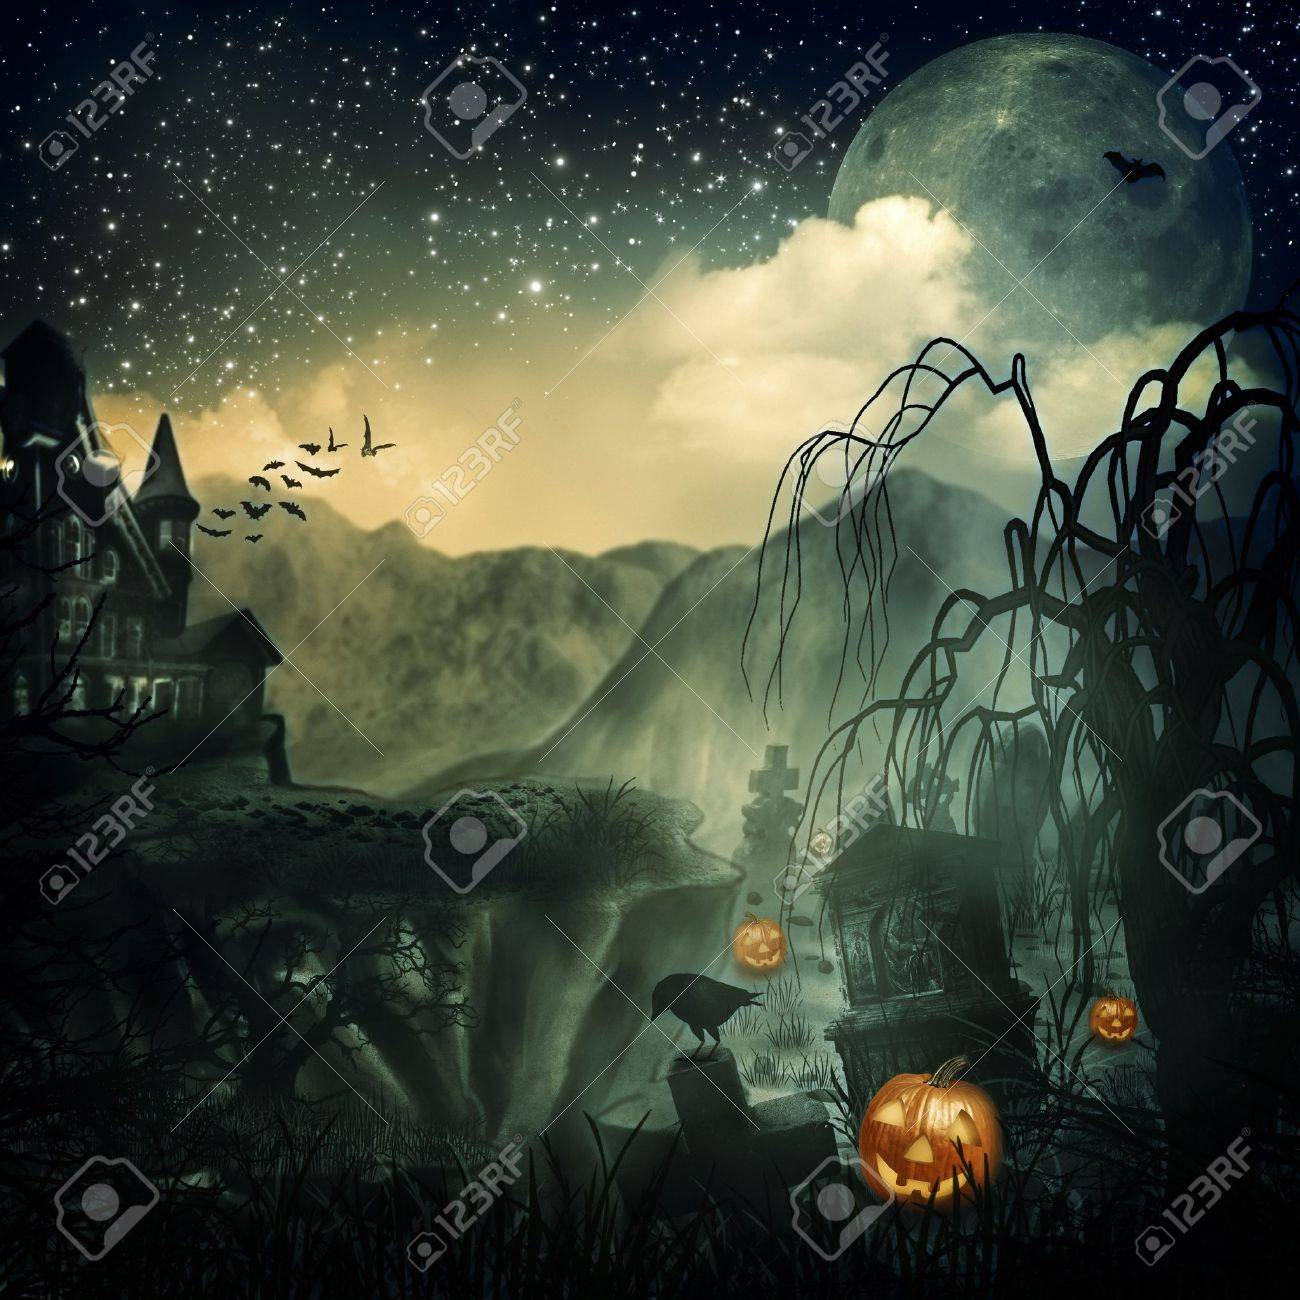 Scary Movie Abstract Halloween Backgrounds For Your Design Stock 1300x1300